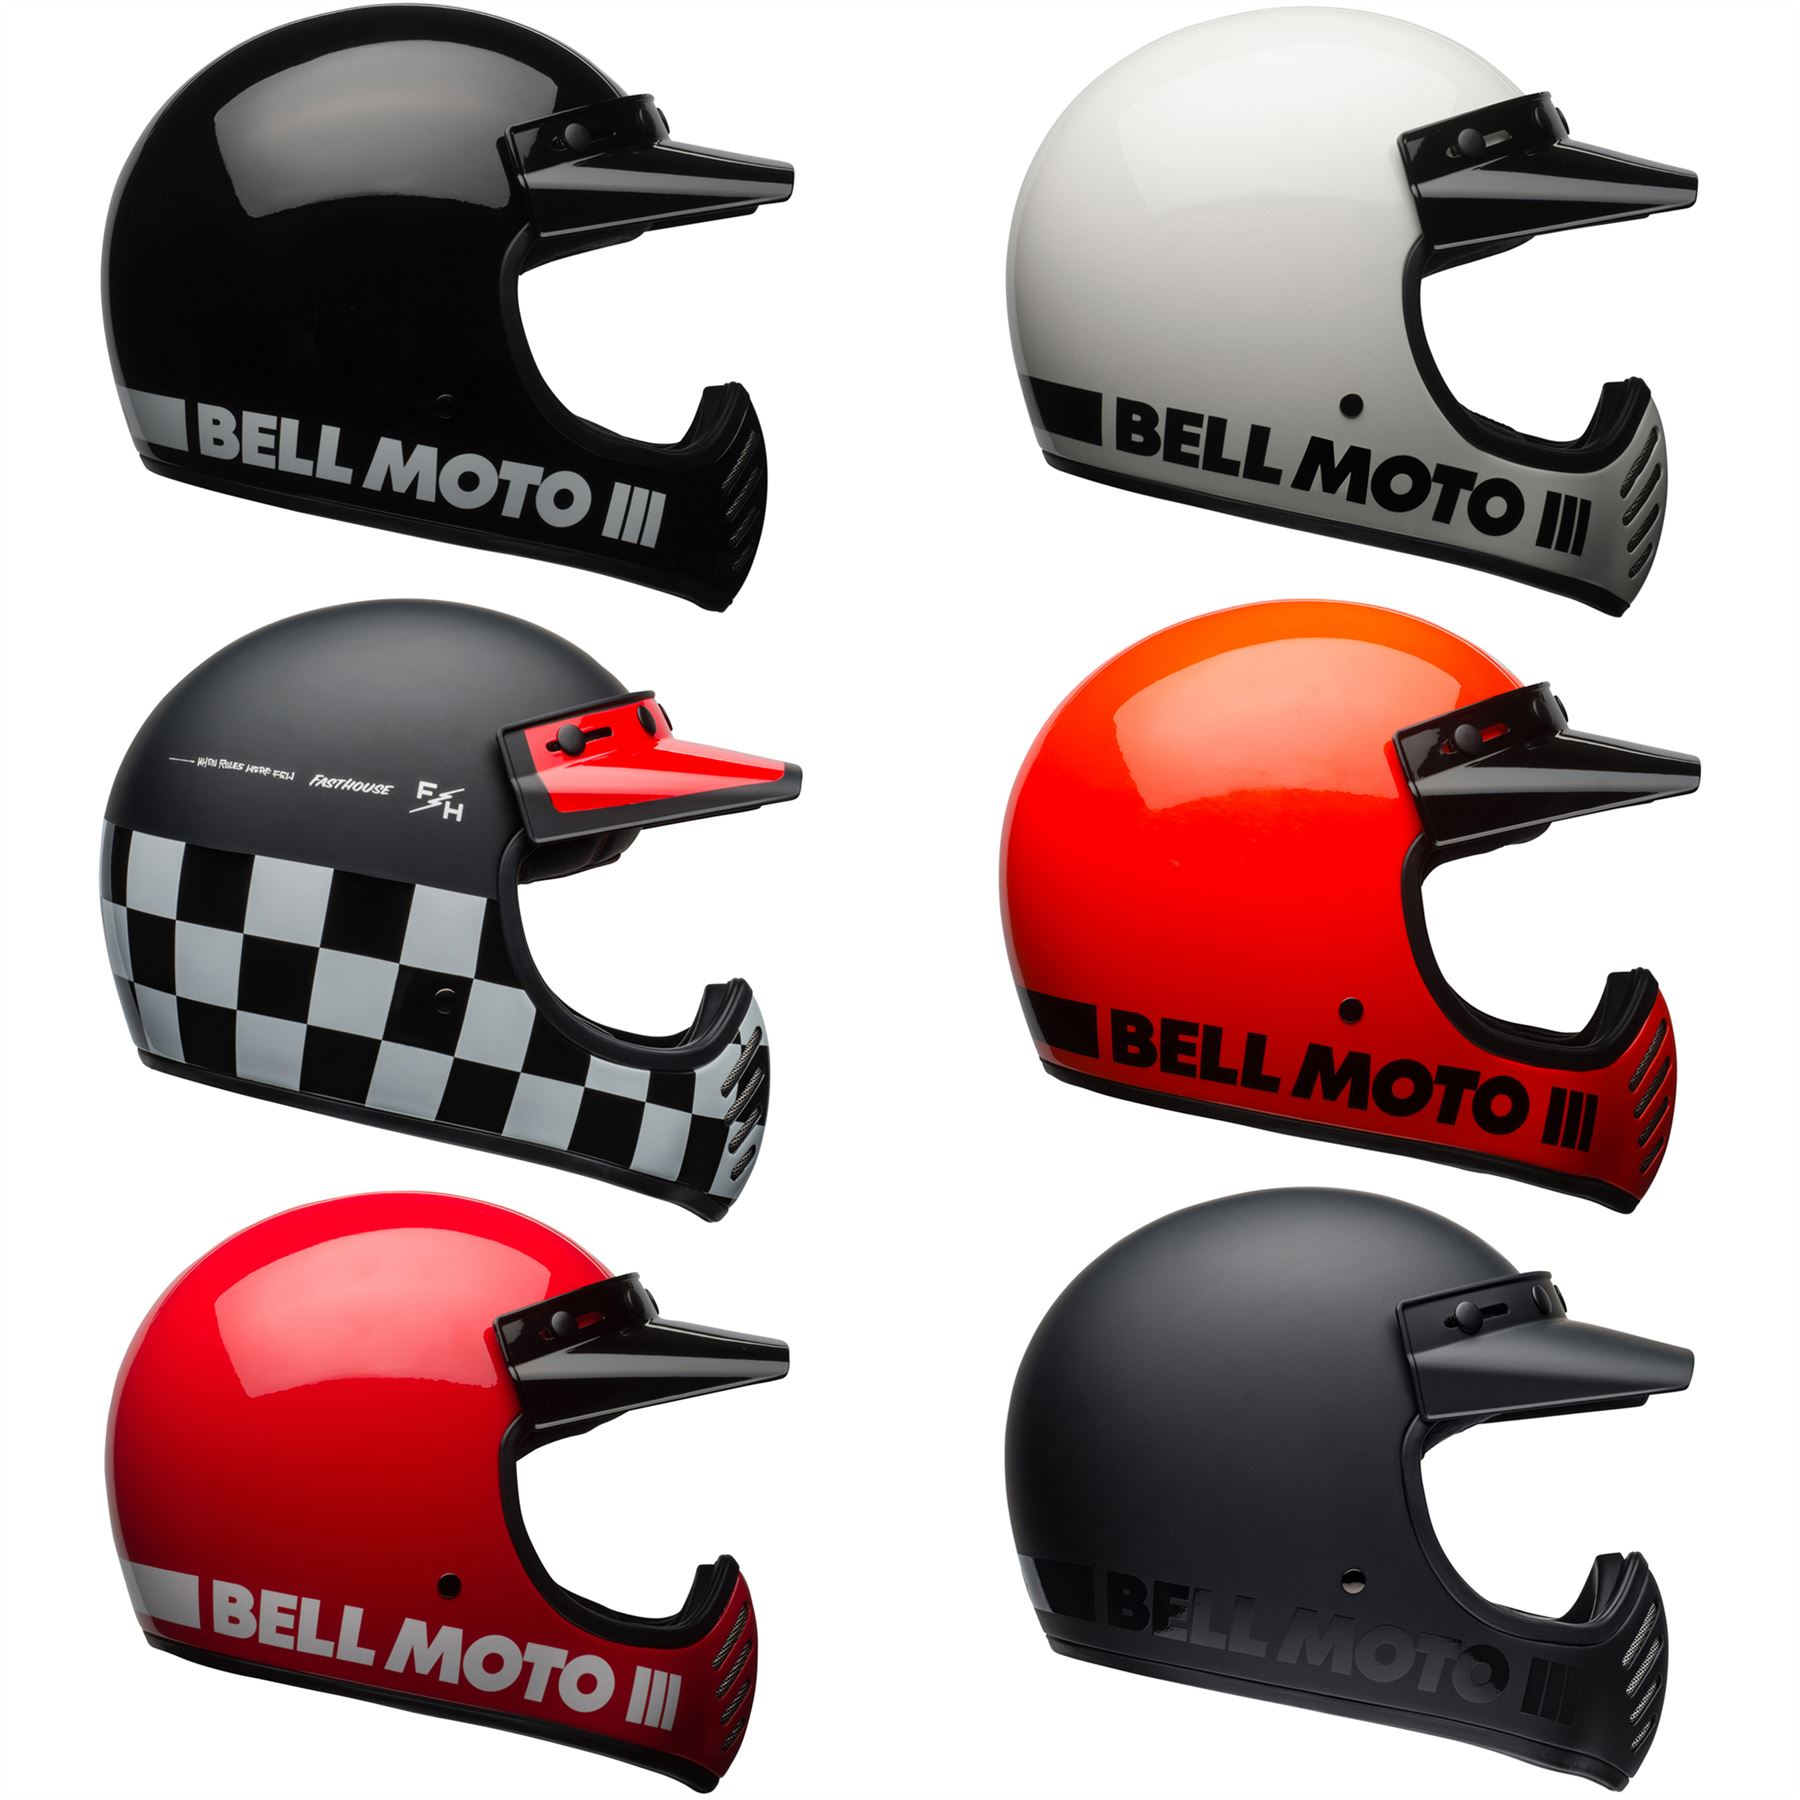 Bell Moto 3 >> Details About Bell Moto 3 Classic Motorcycle Helmet Choose Color Size